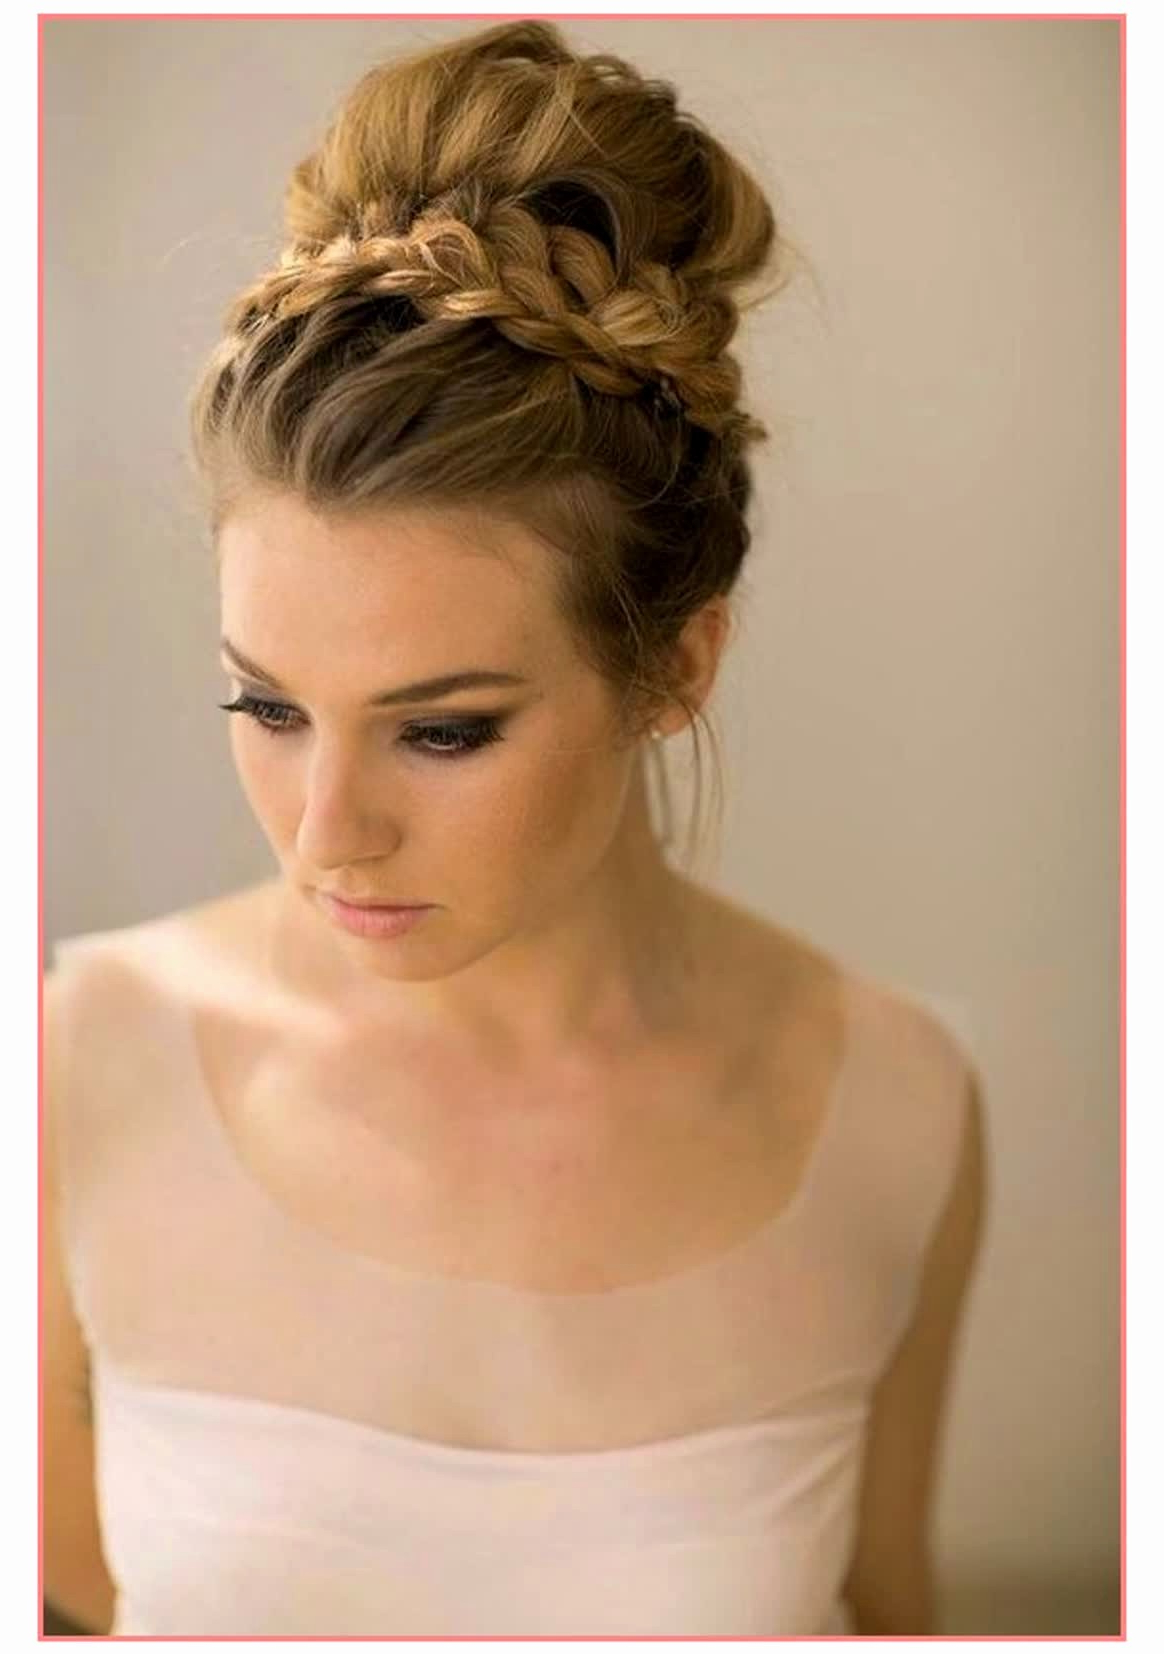 Wedding Hairstyles Natural Unique 15 New Wedding Guest Hairstyles Within Hairstyles For A Wedding Guest With Short Hair (View 21 of 25)